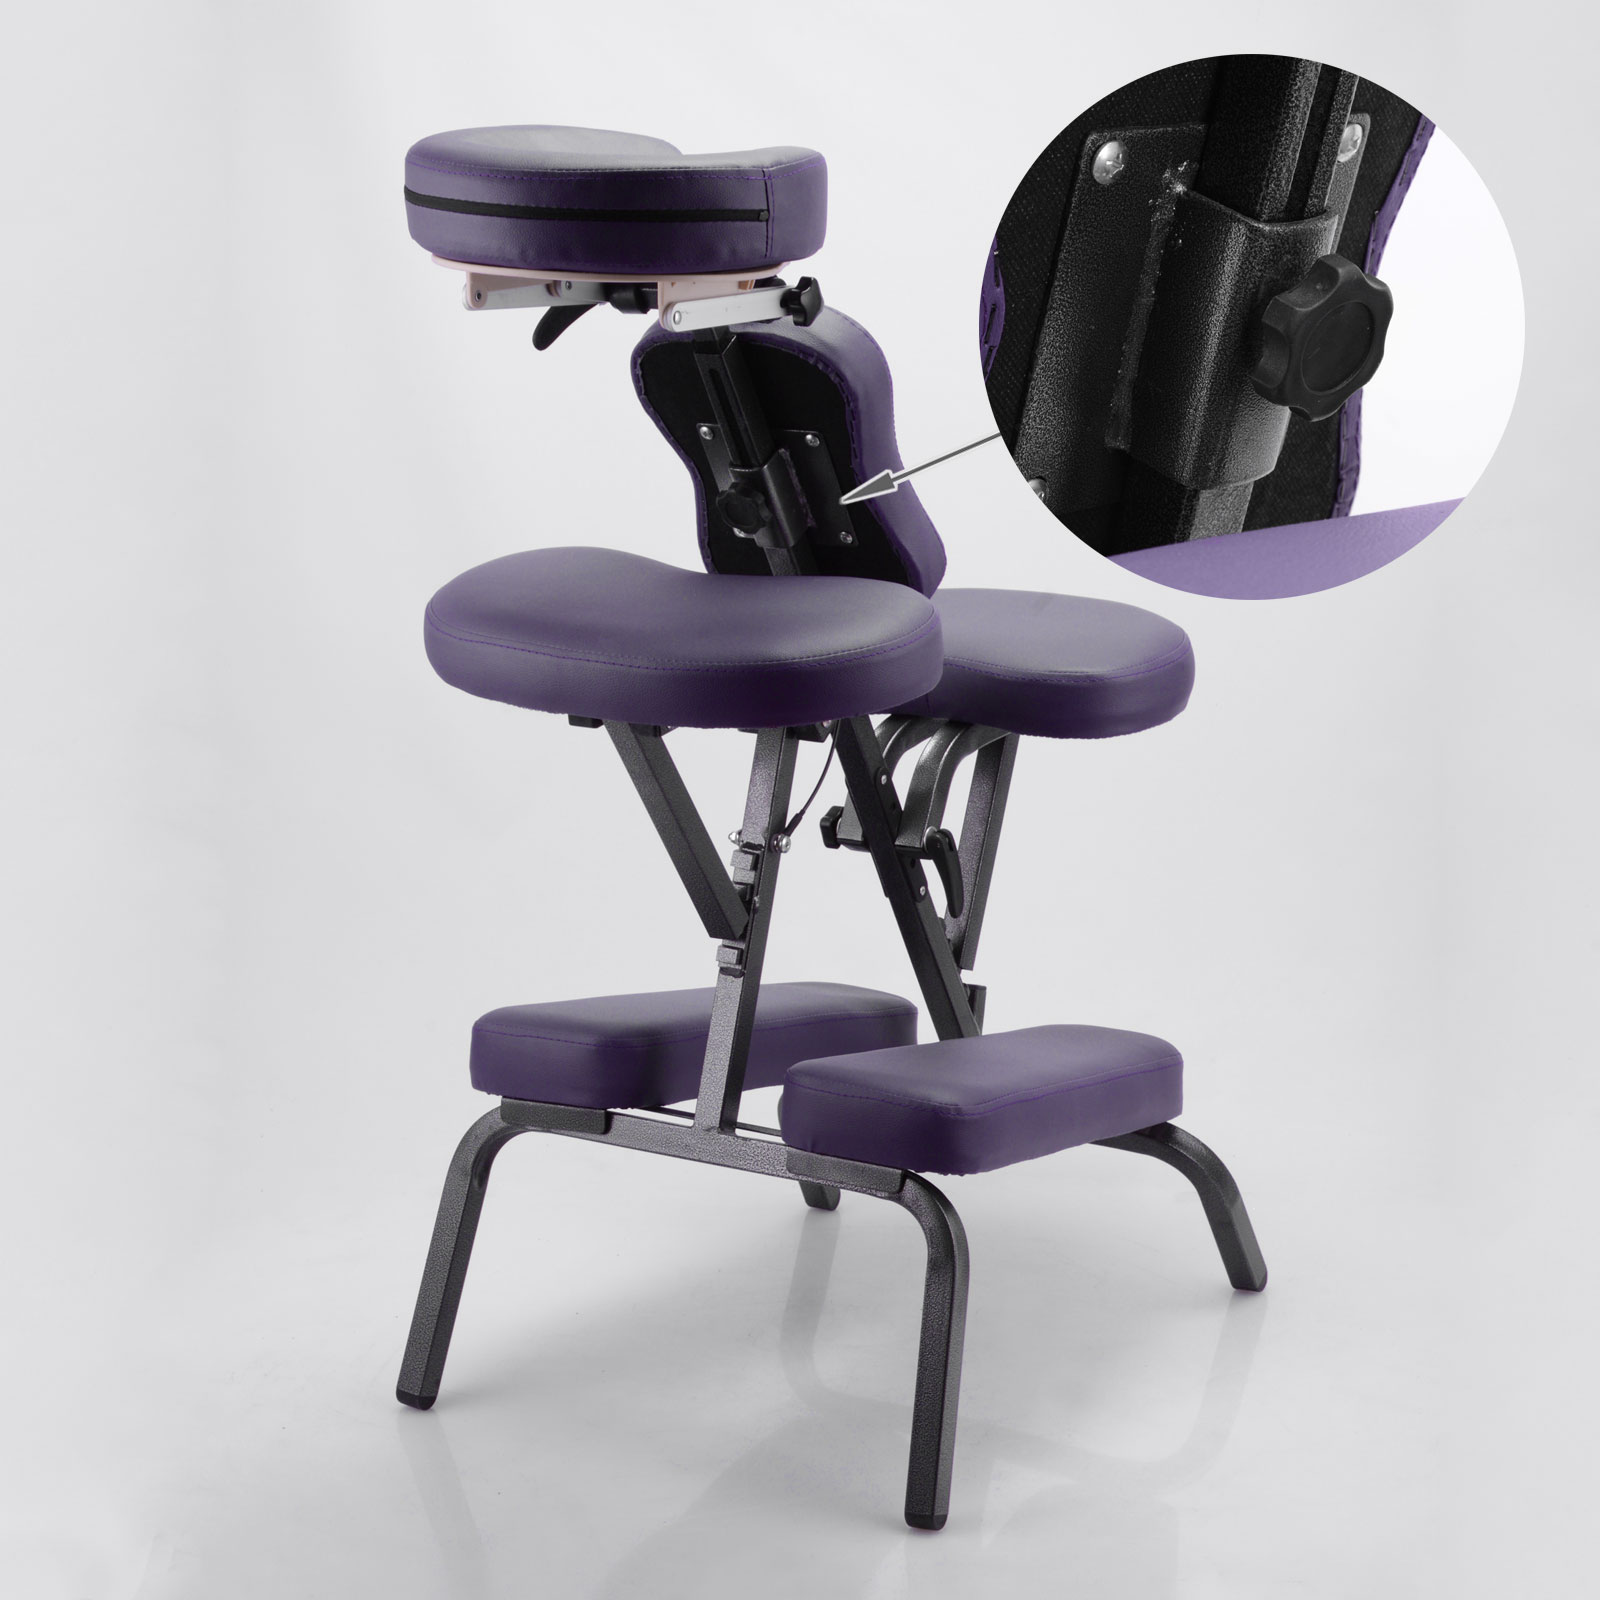 New lightweight portable head folding stool salon beauty therapy massage chair ebay - Portable reflexology chair ...